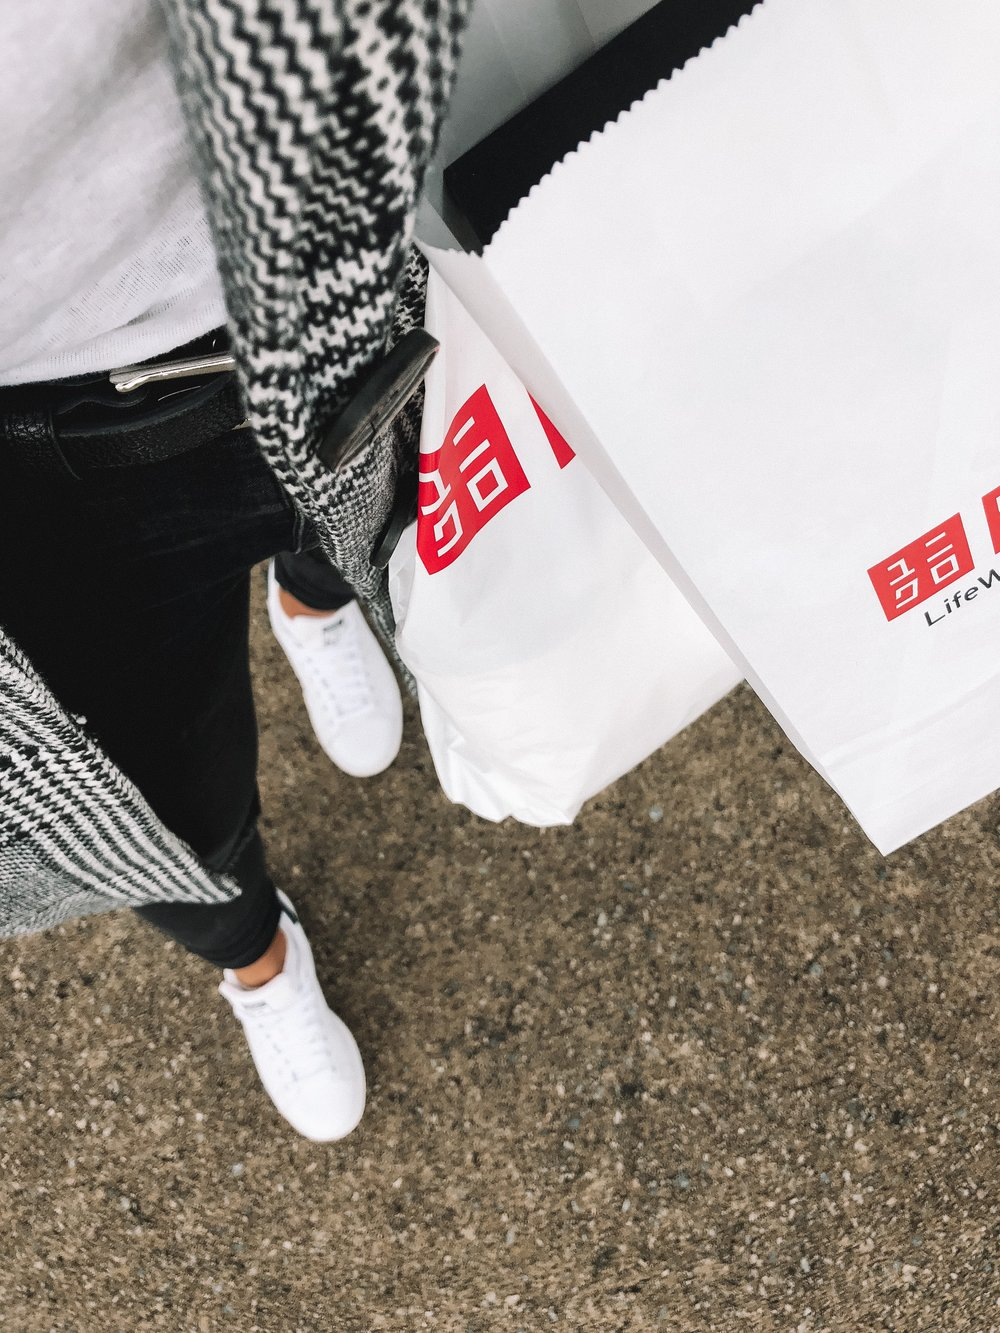 UNIQLO PERTH - Purchases